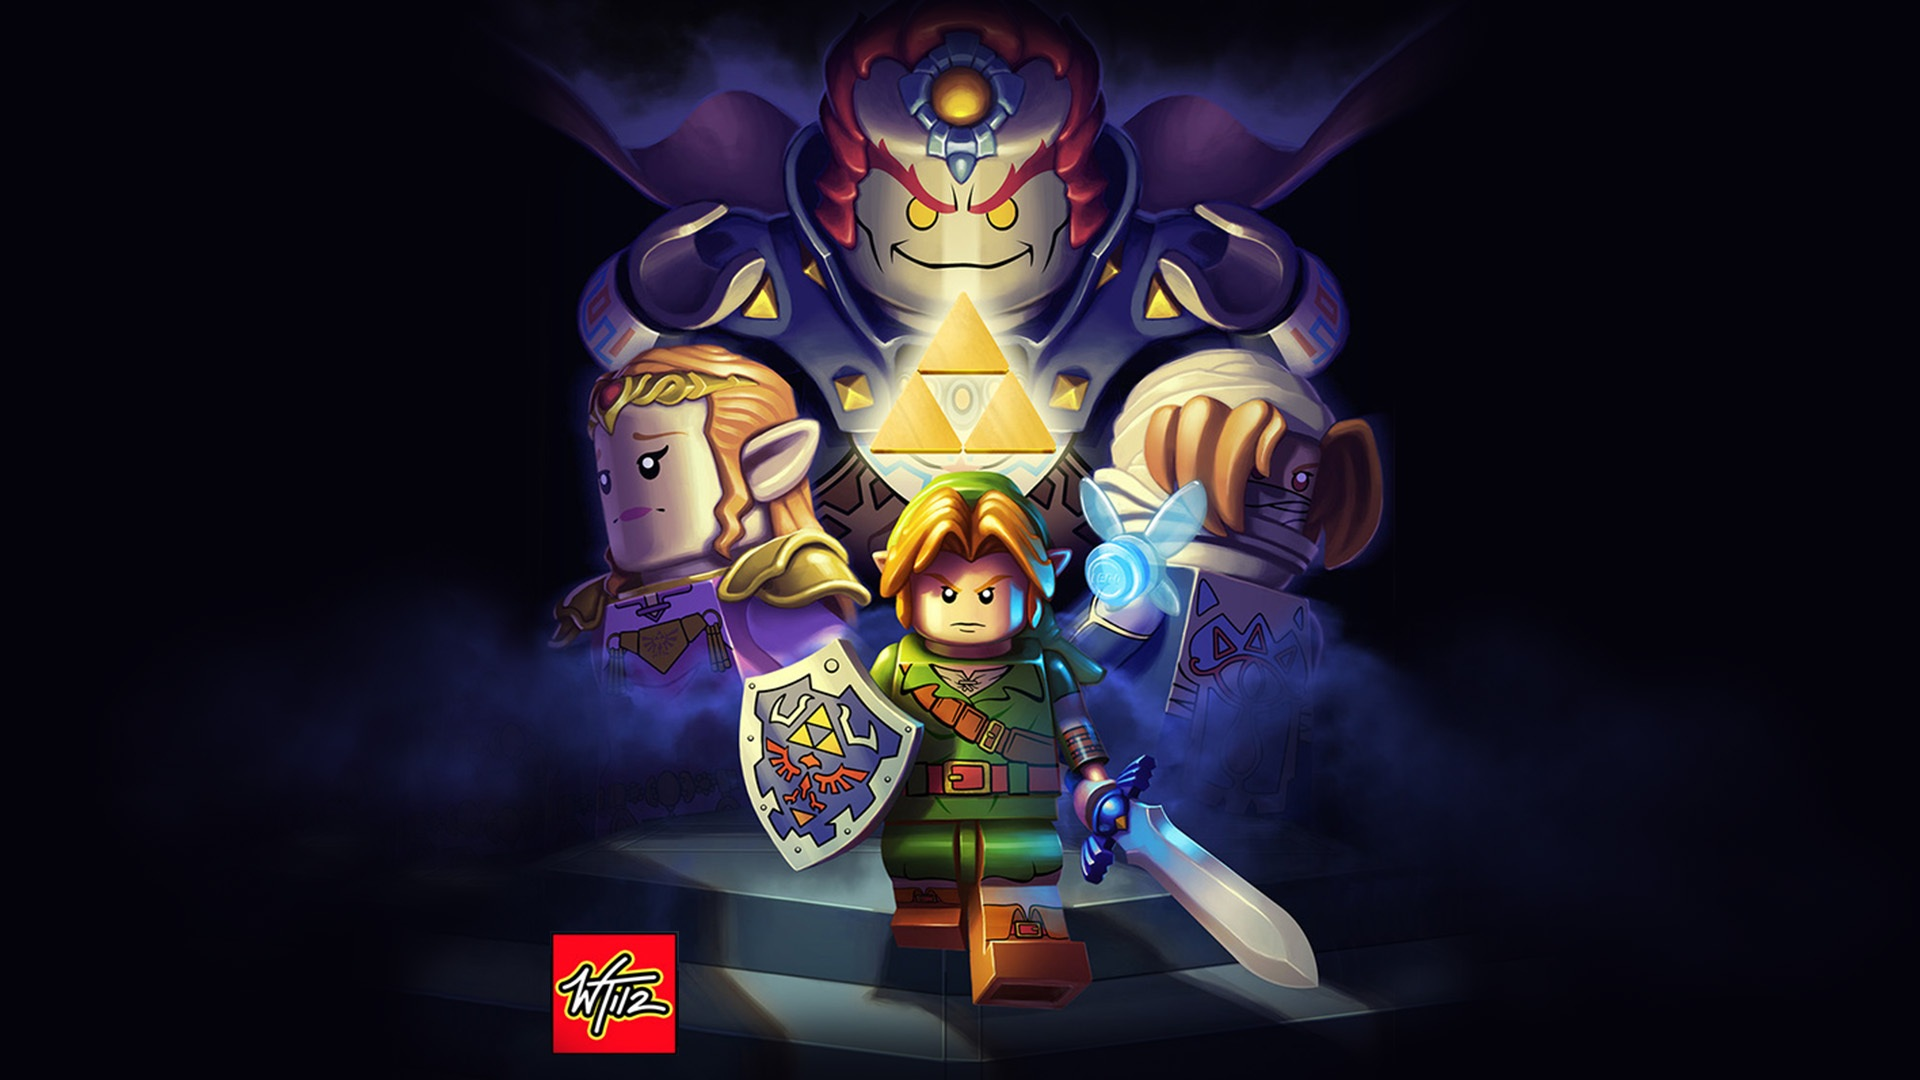 legend-of-zelda-wallpapers-hd-download-free | wallpaper.wiki